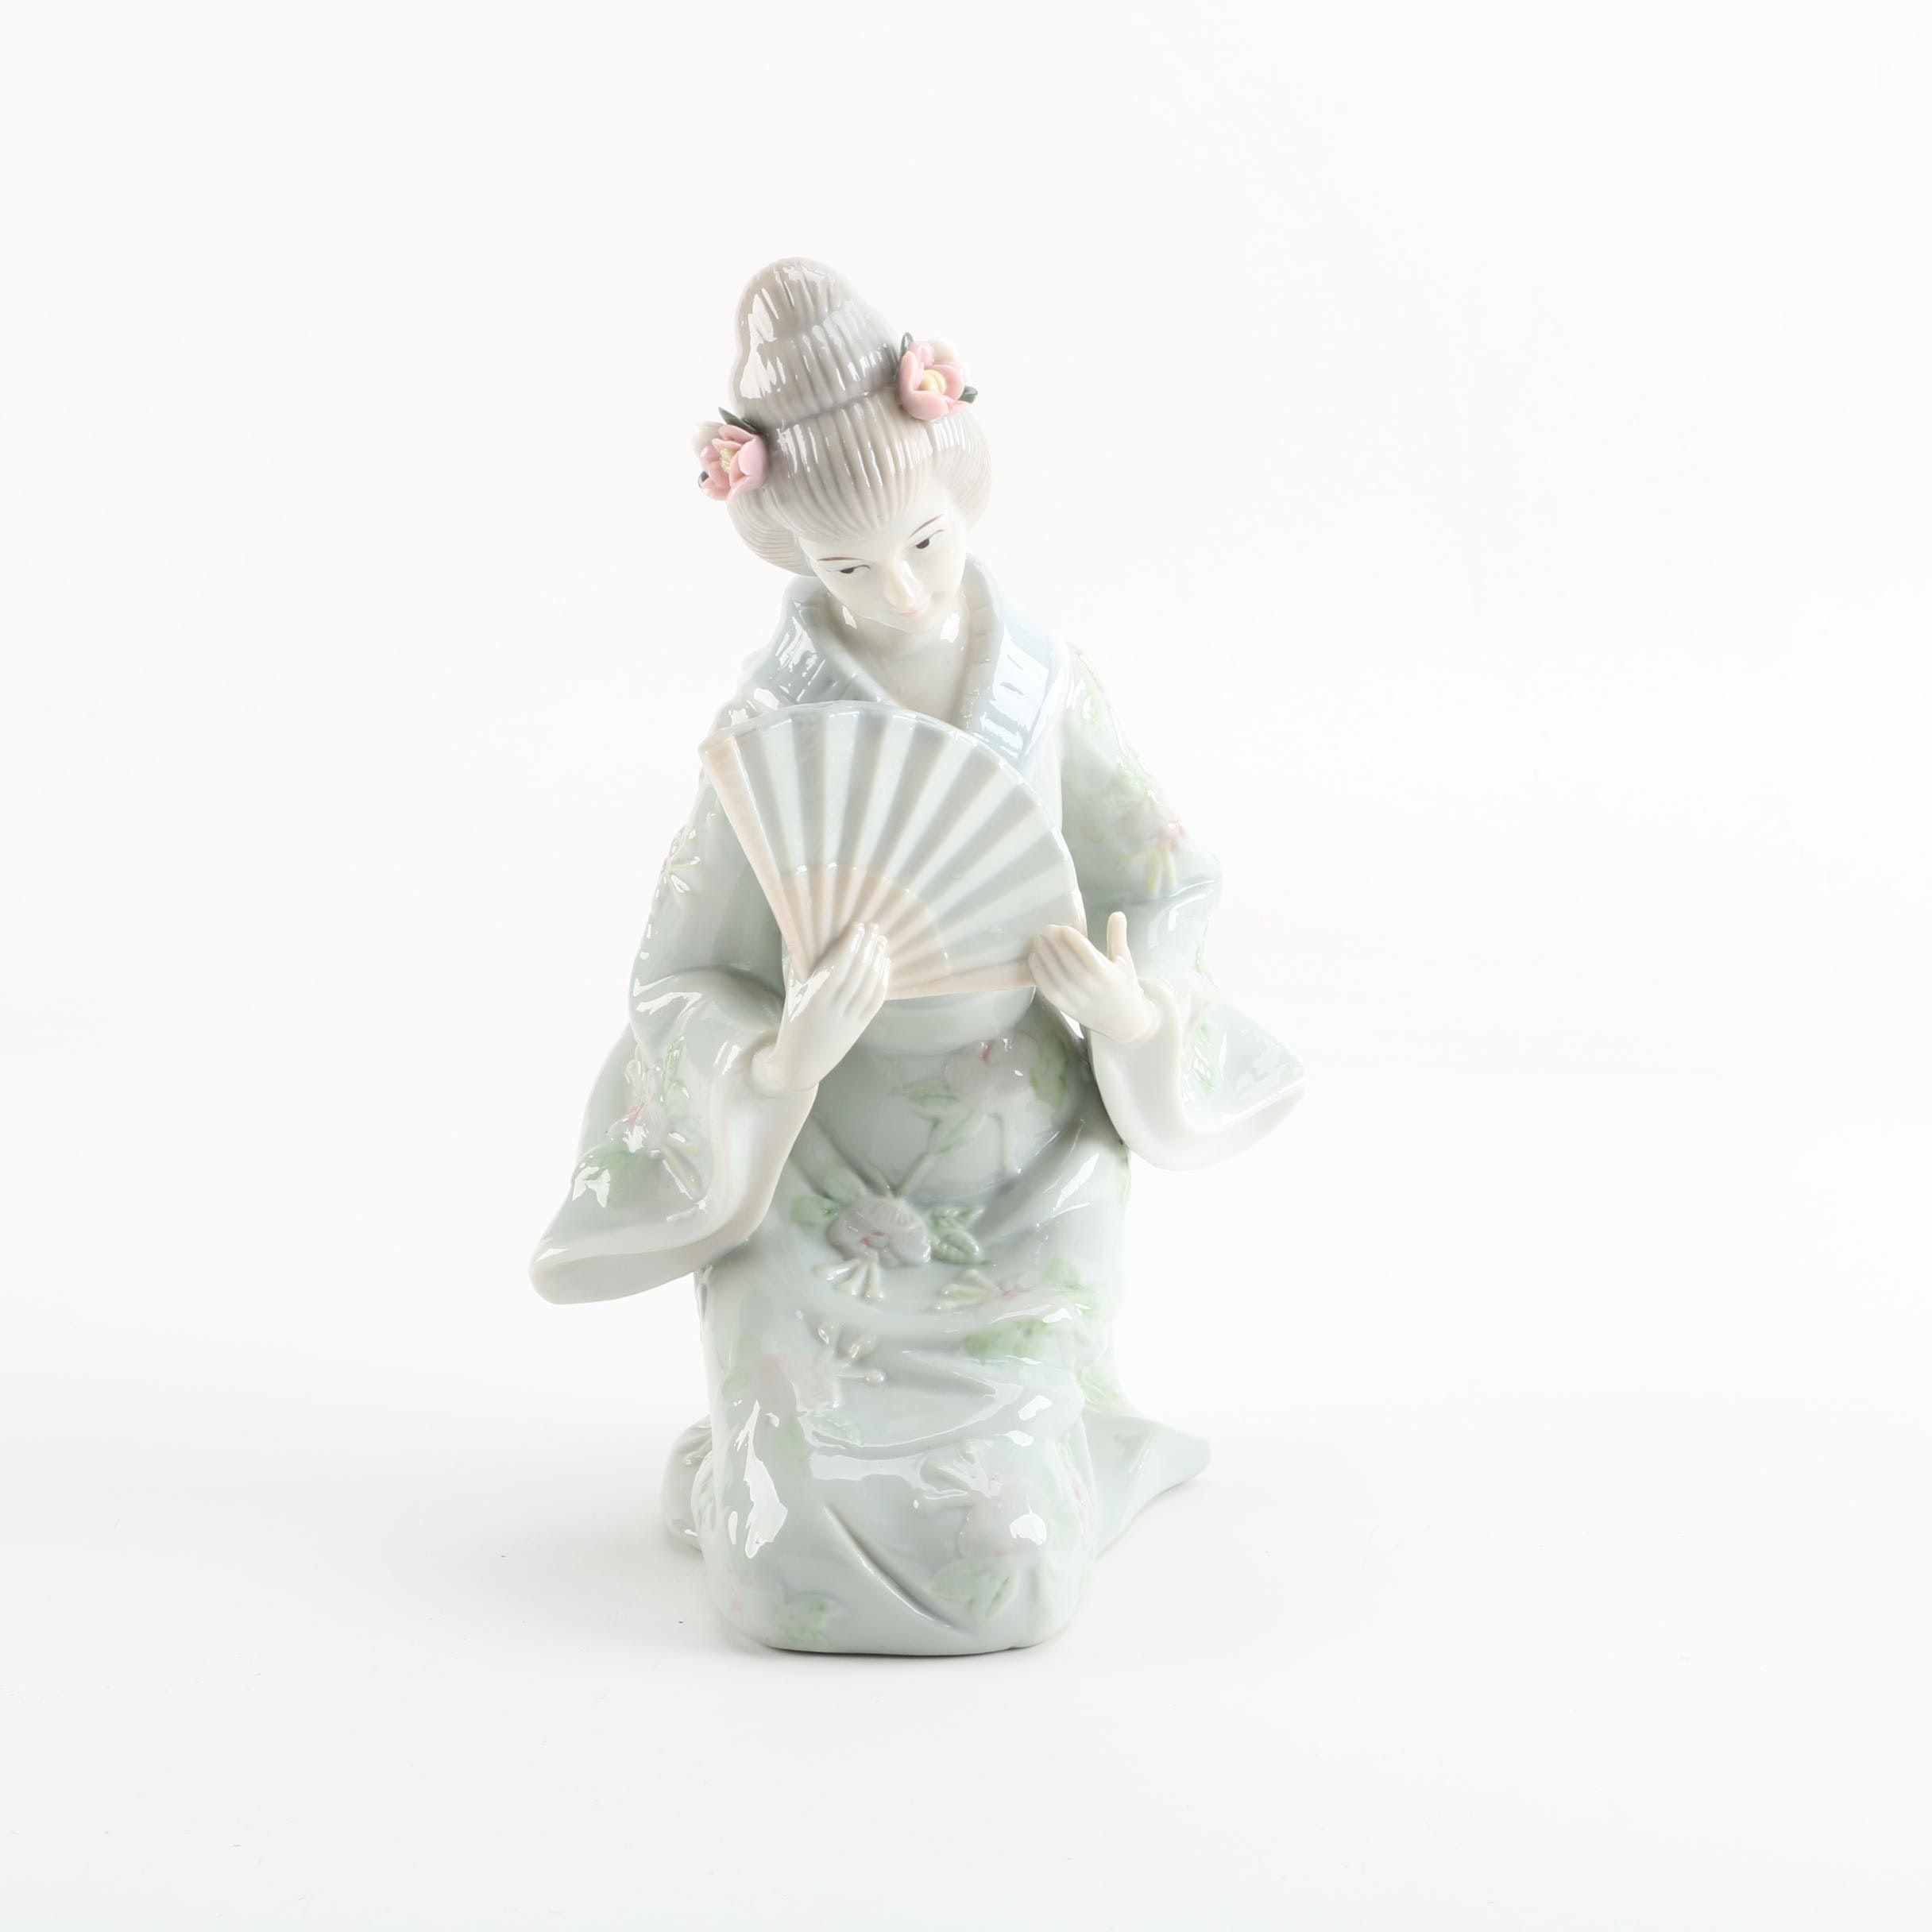 KPM Japanese Inspired Porcelain Figurine